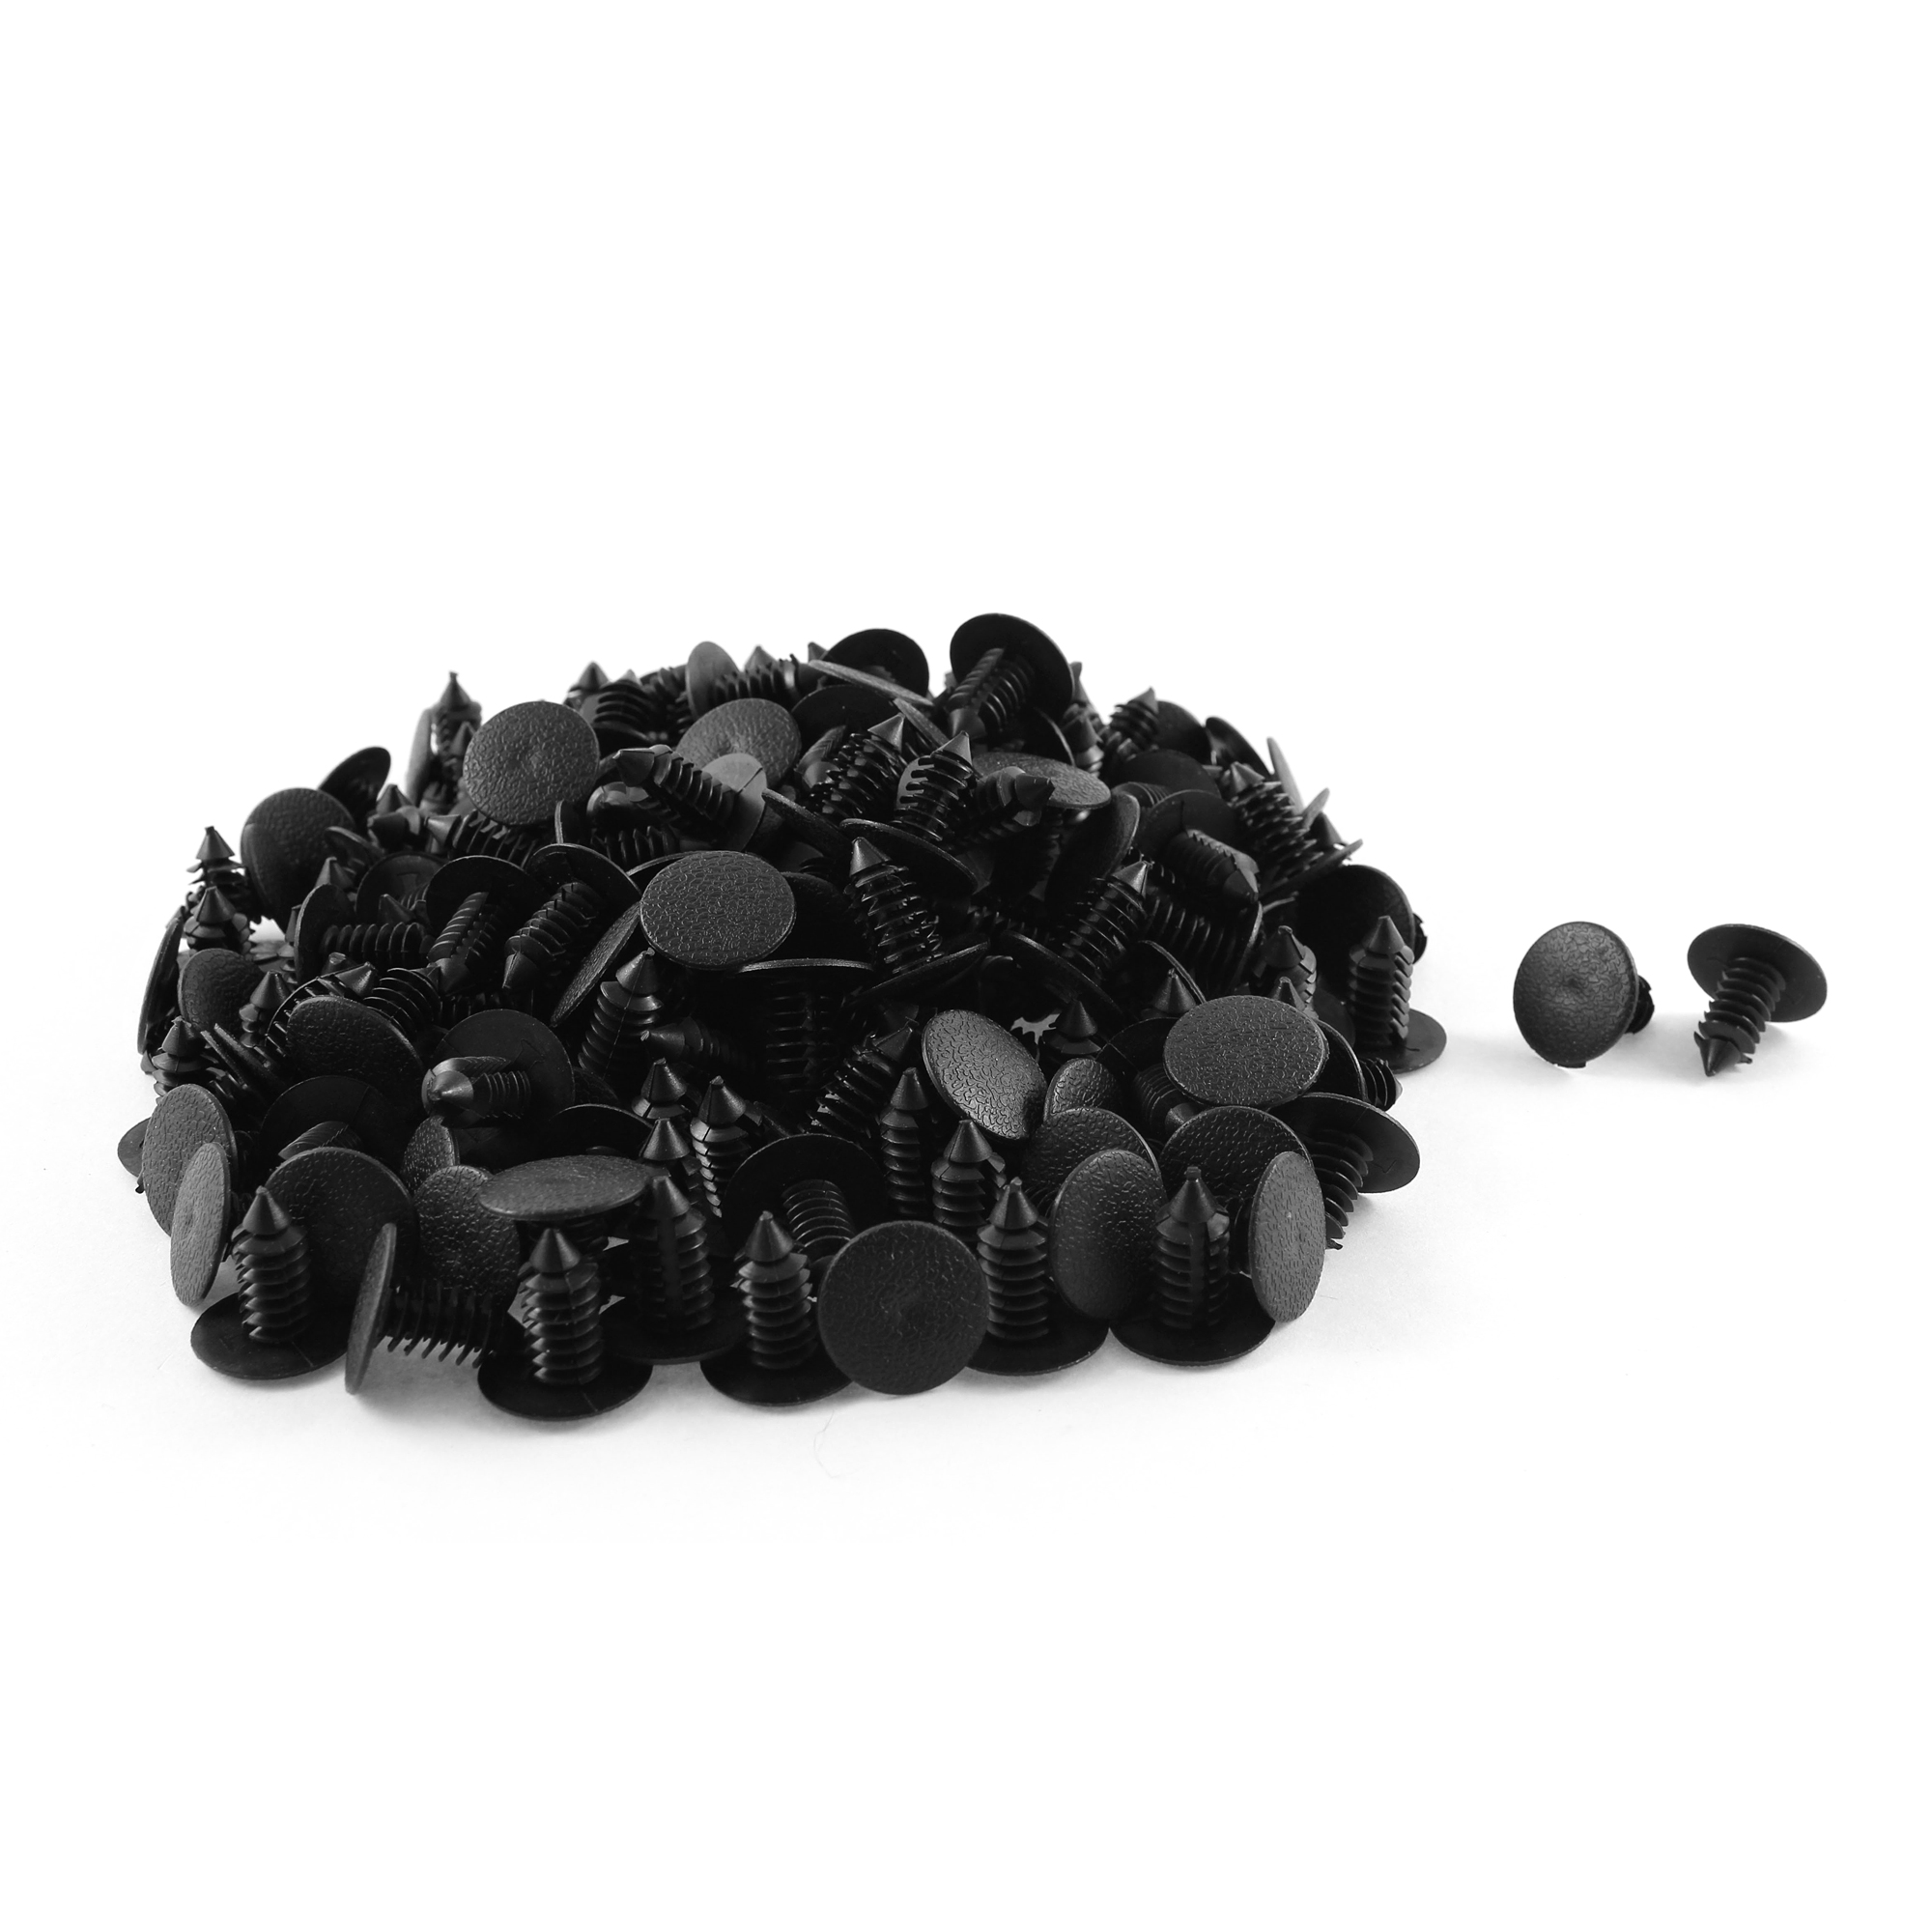 200 Pcs Black Plastic Rivet Trim Fastener Retainer Clips 8mm x 18mm x 19mm